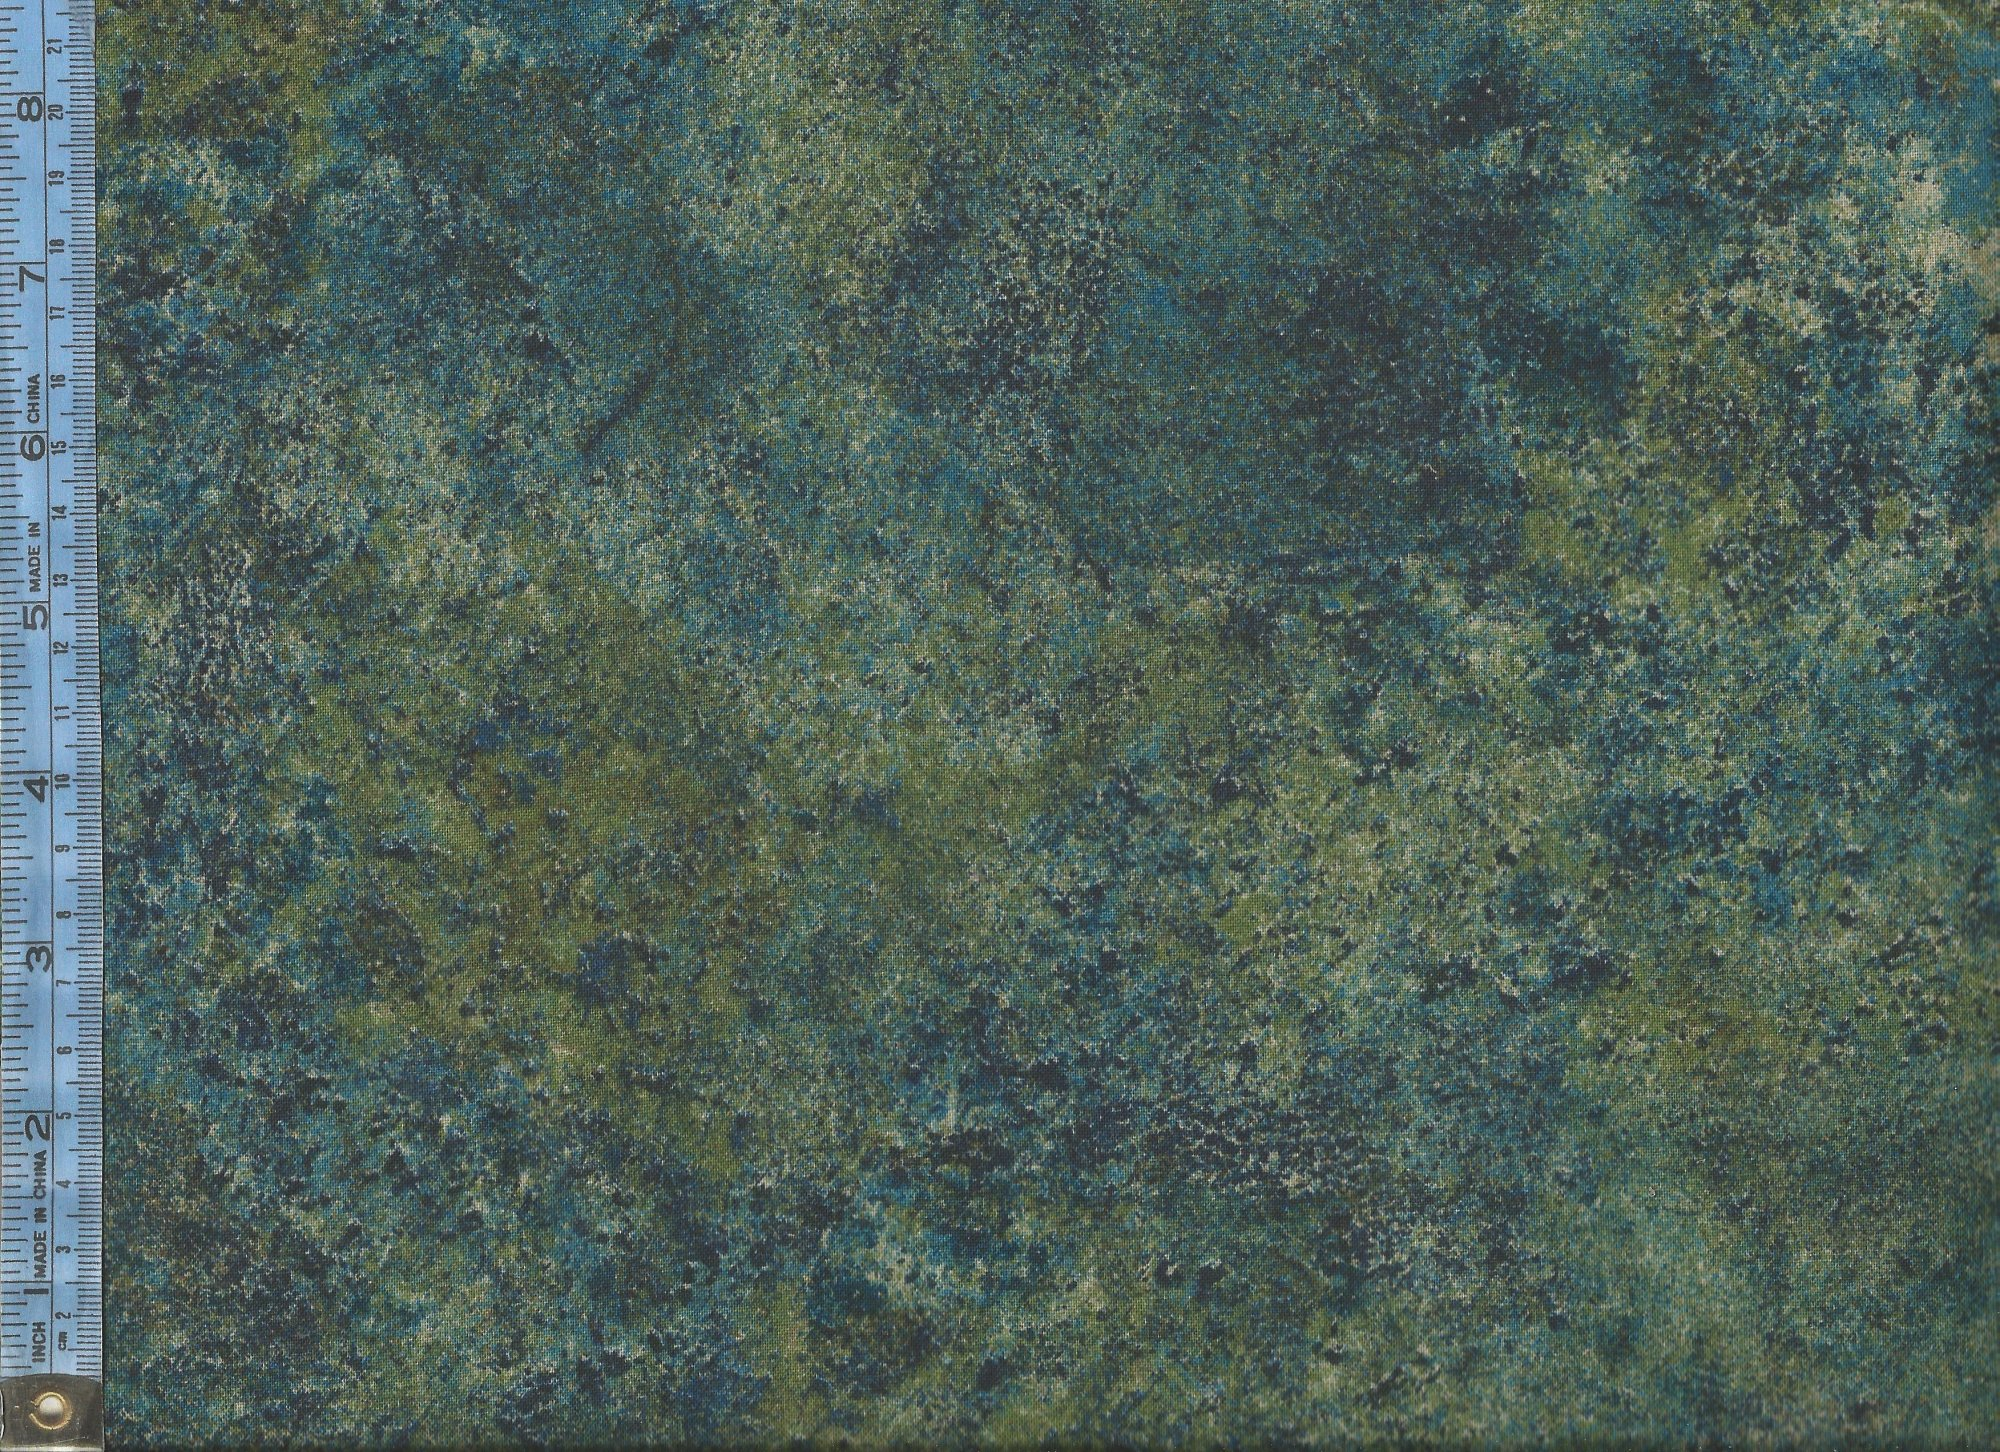 Stonehenge Gradations blue planet shades of turquoise with green